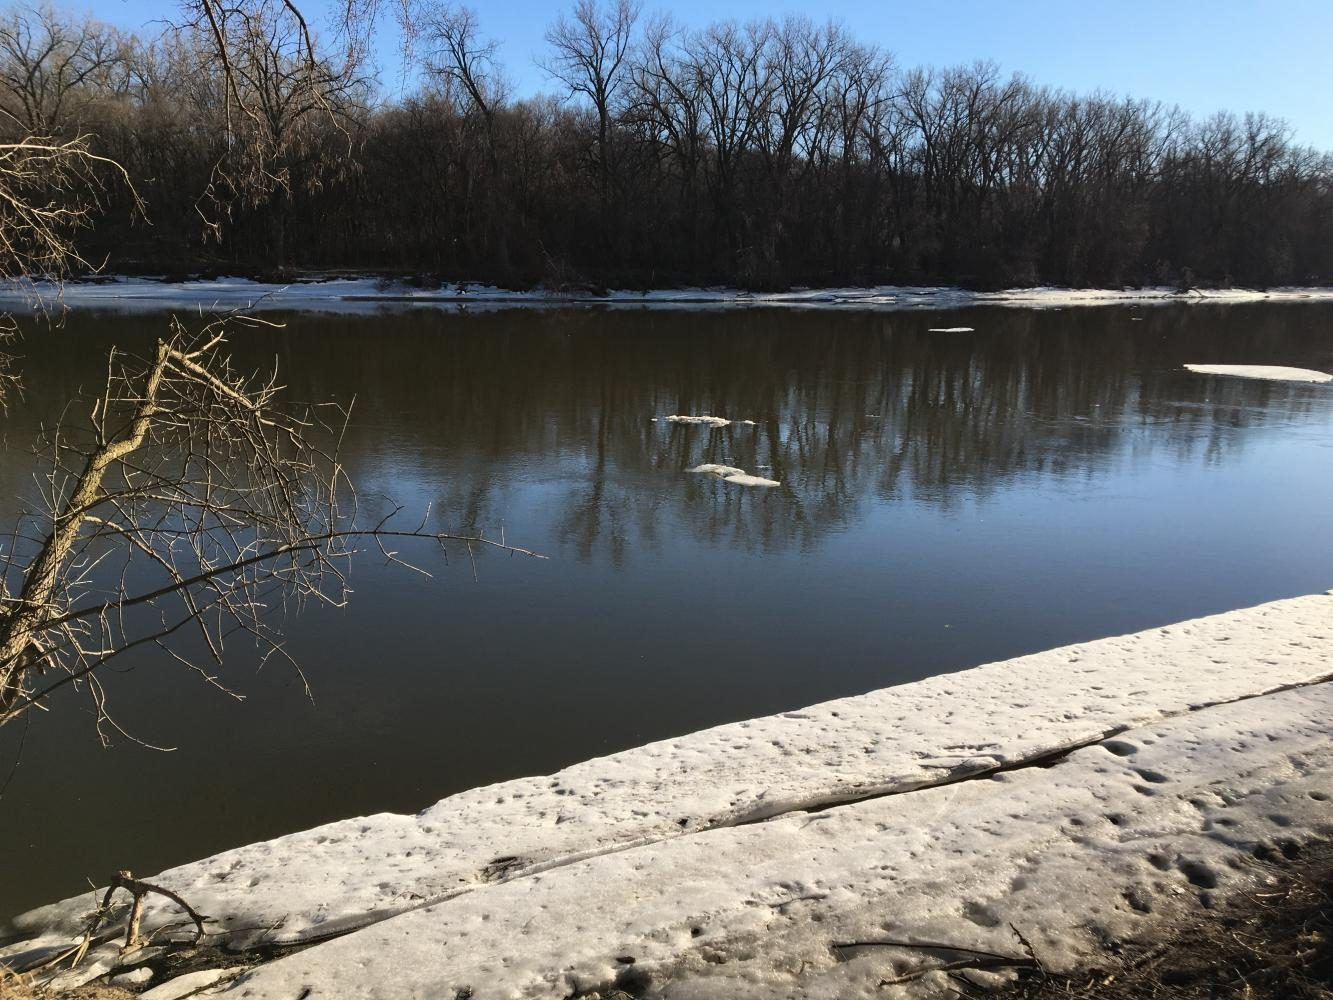 Receding ice banks along the Mississippi River suggest a trend of increased global temperatures.